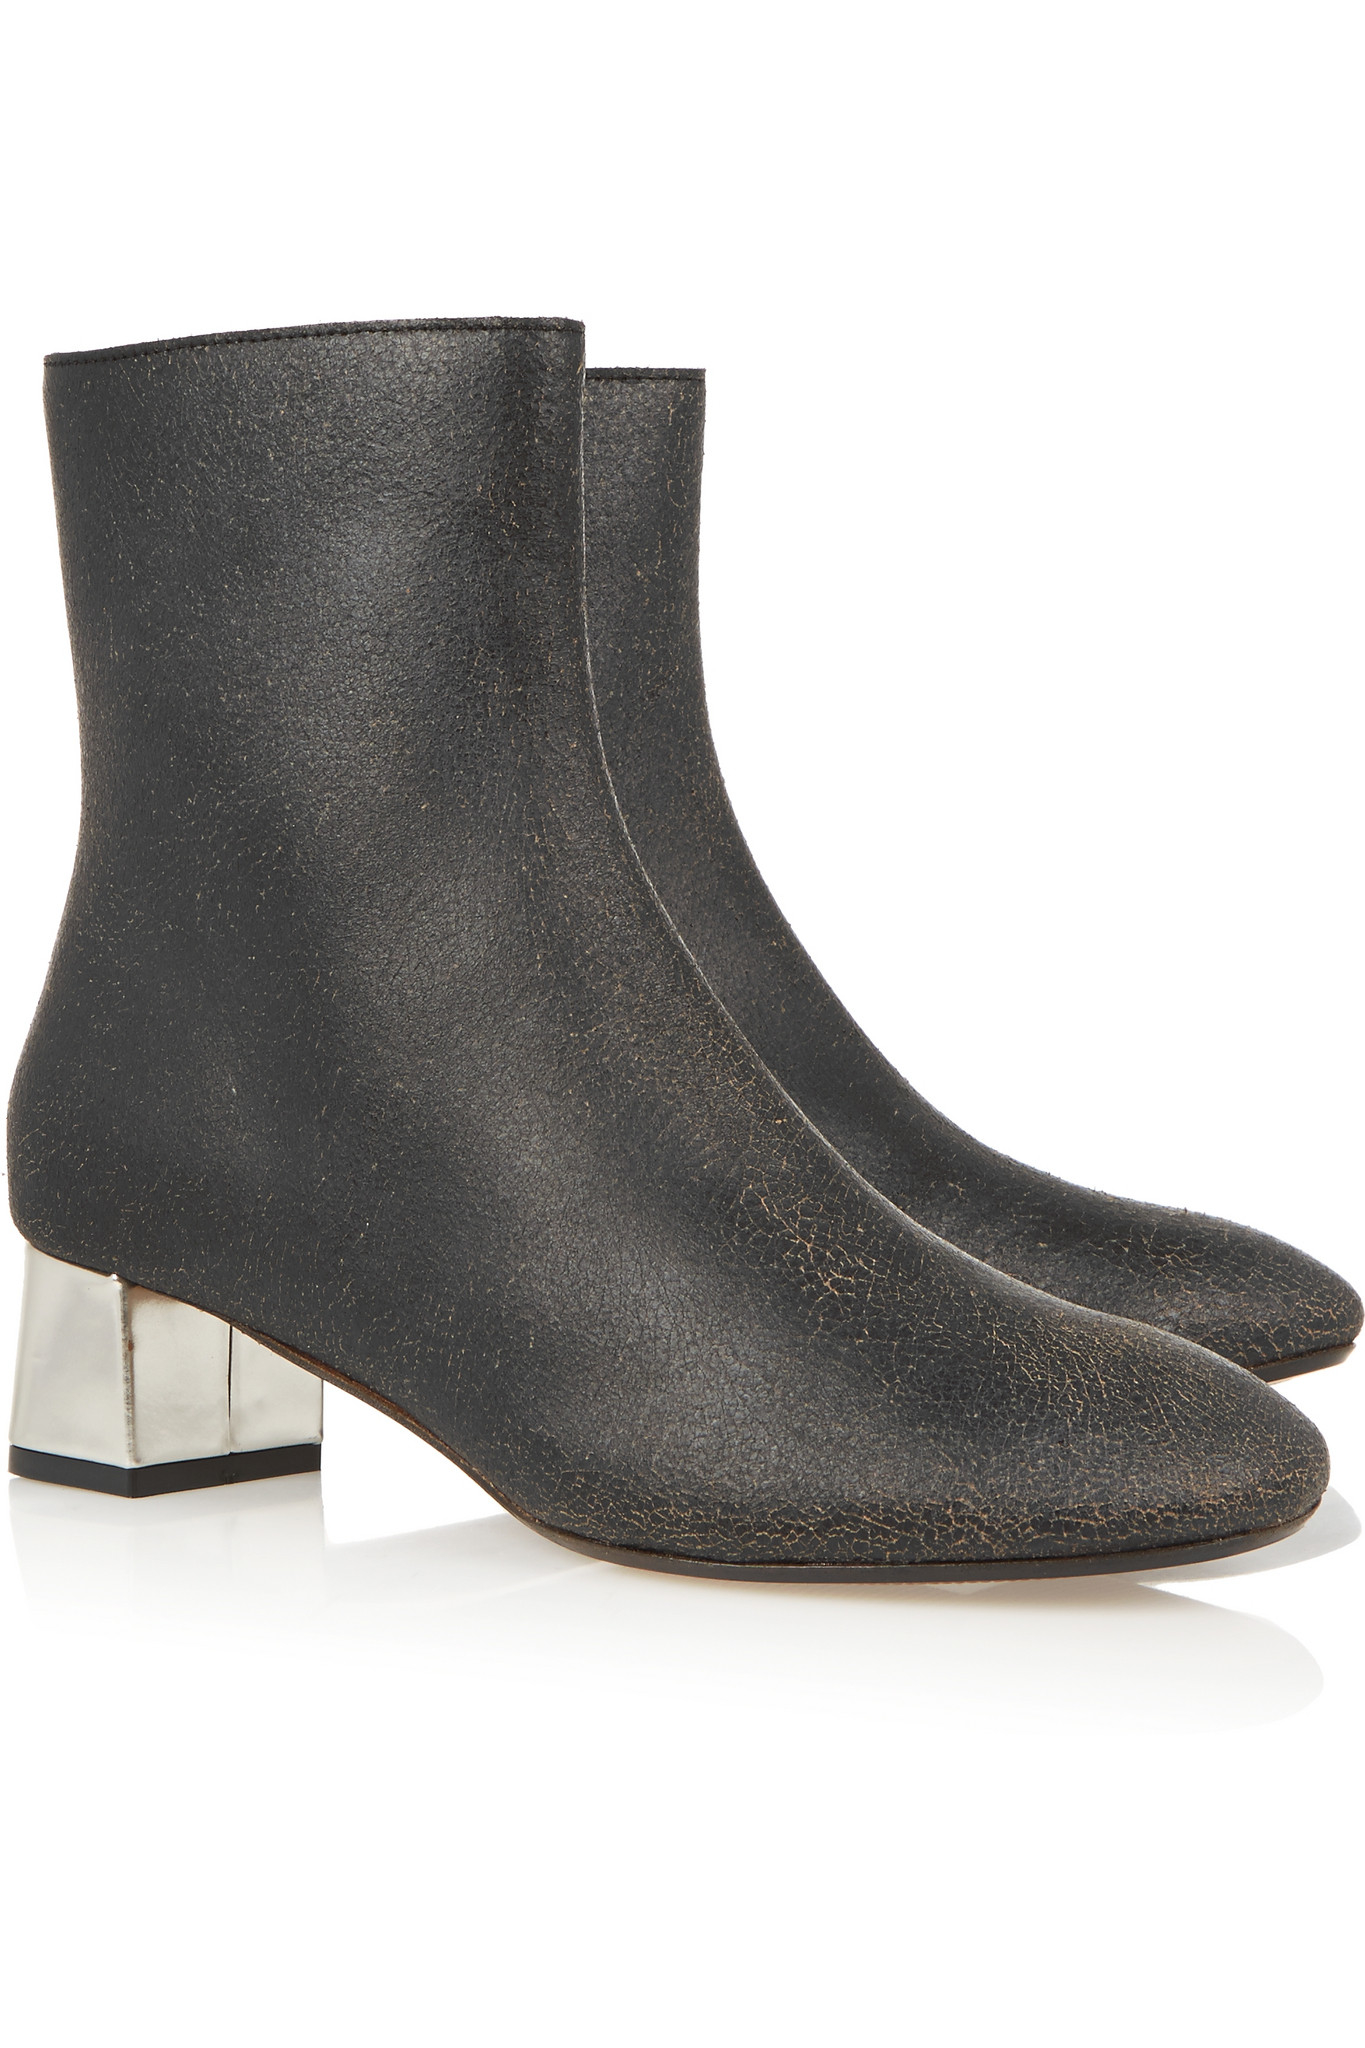 Marni Cracked-leather Ankle Boots in Dark Gray (Grey)